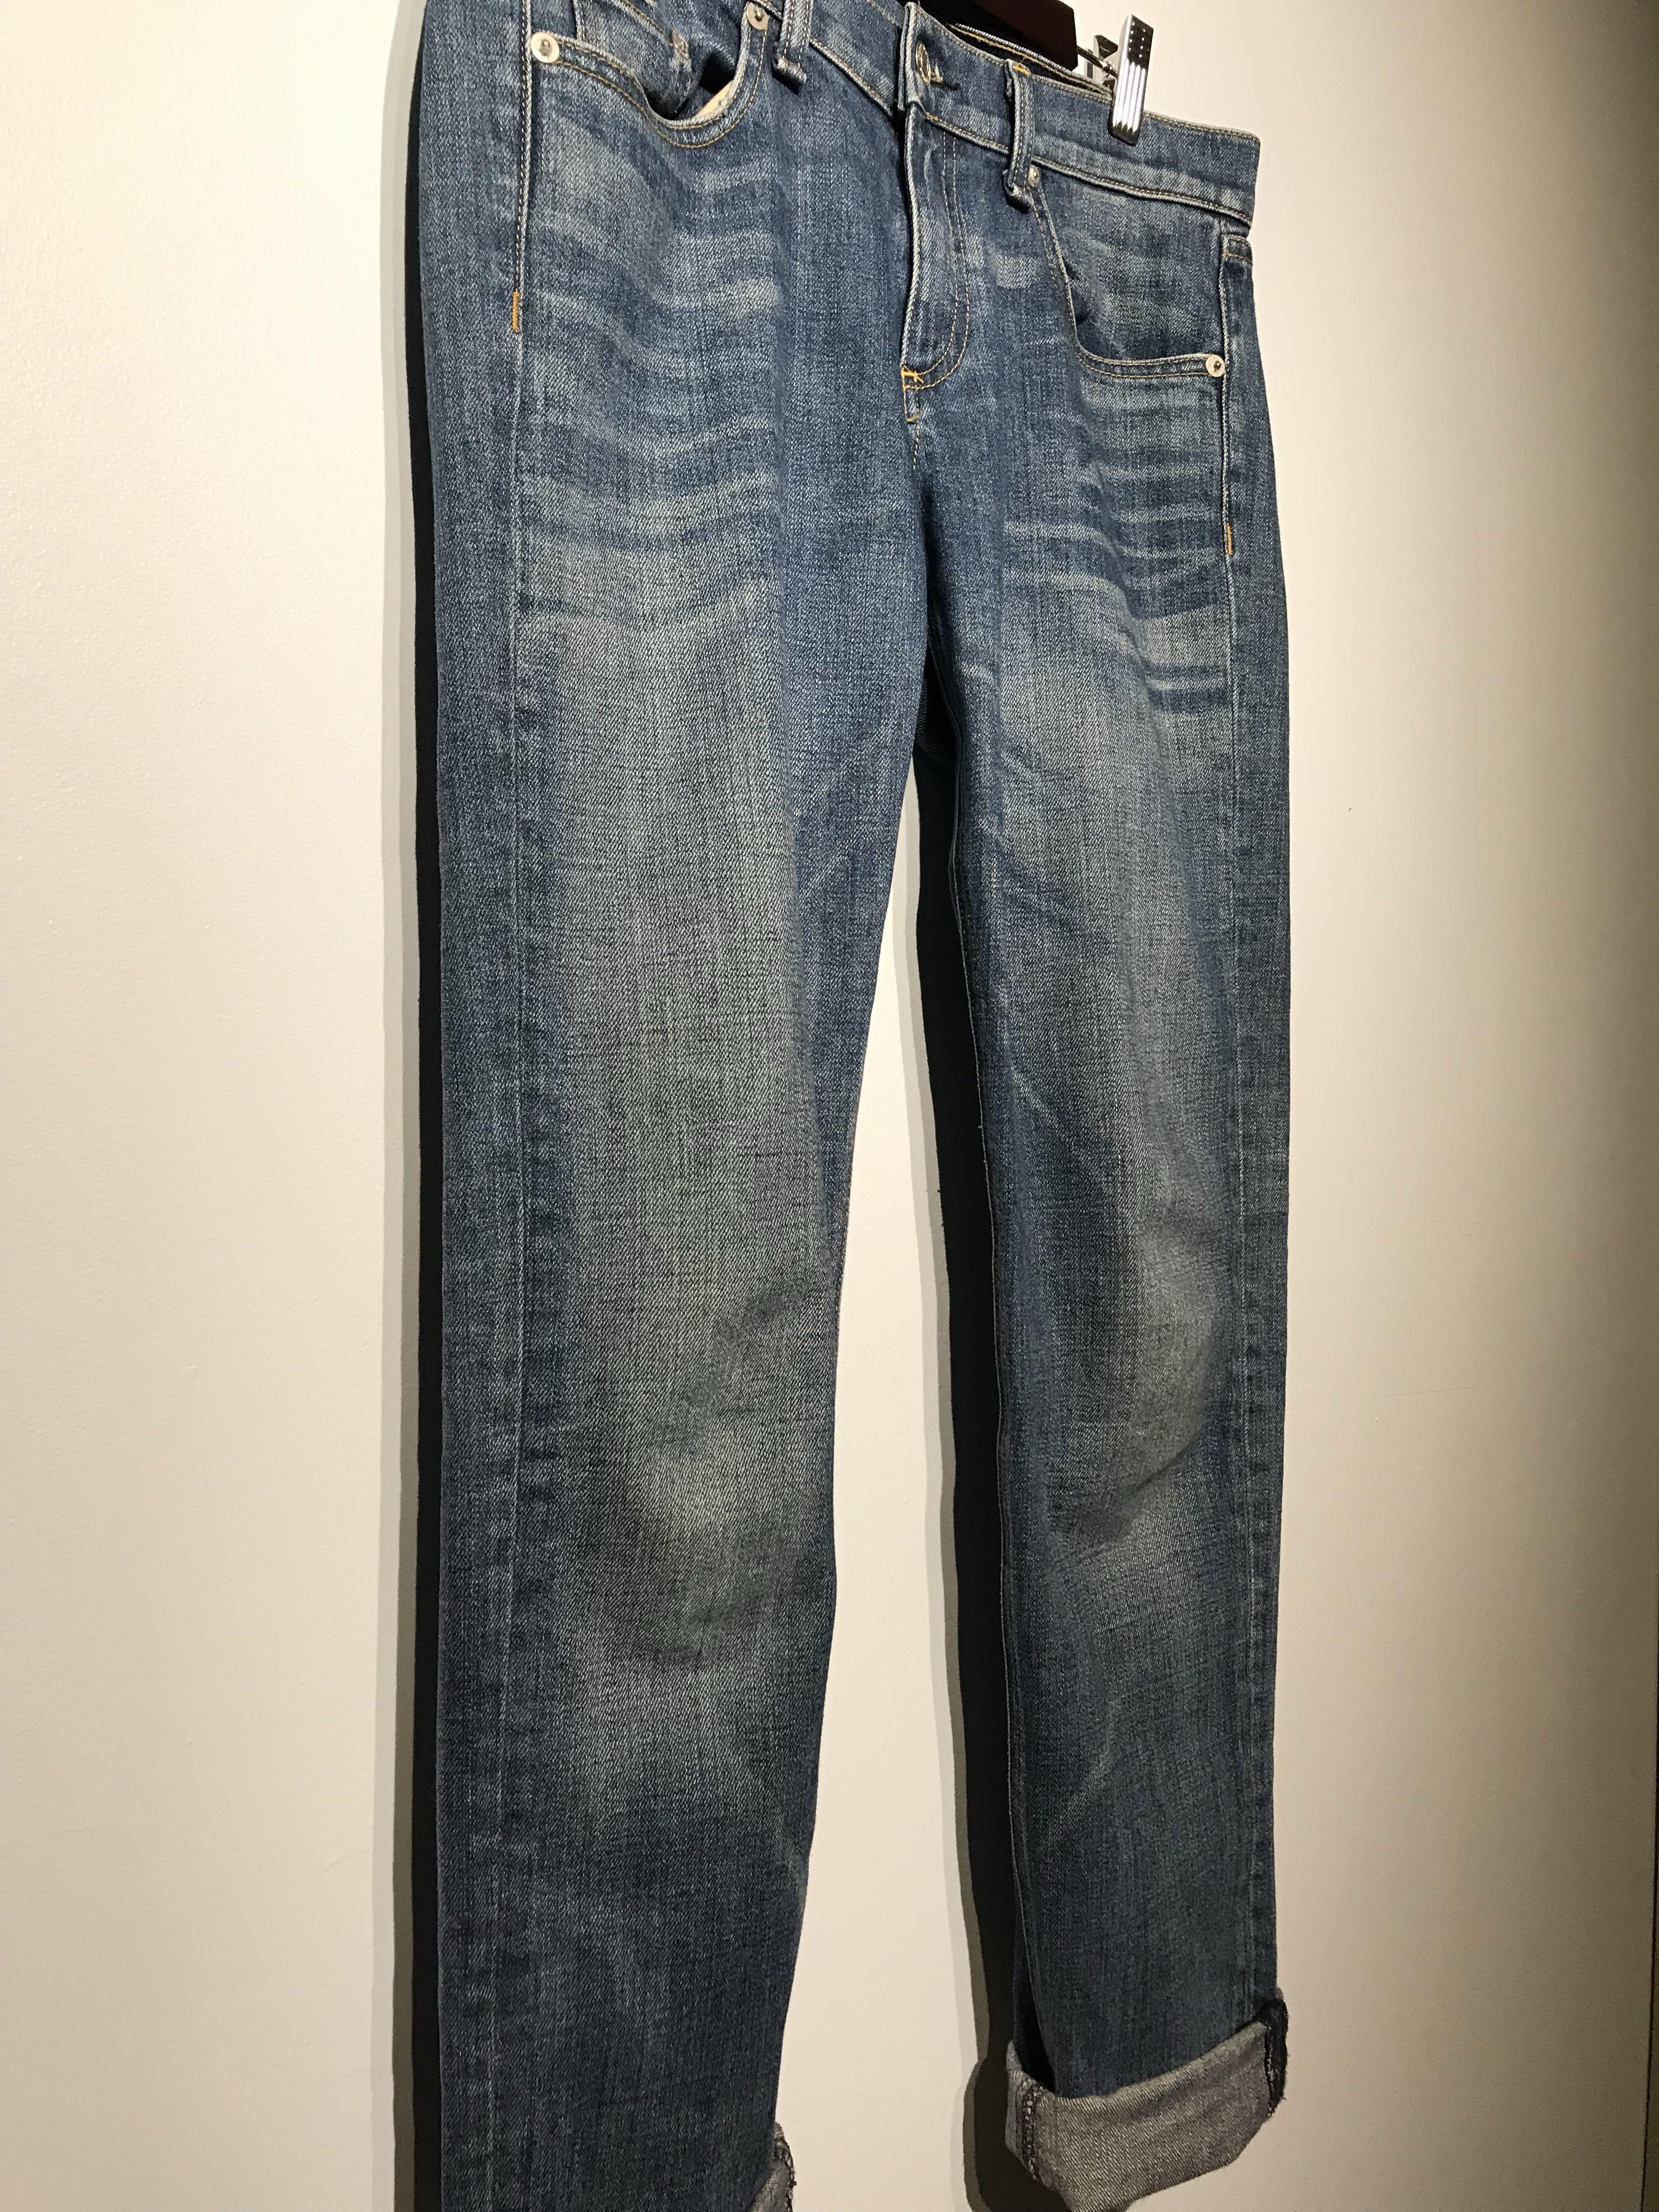 Rag and Bone Dre Boyfriend Roll Cuff Jeans Sz 28